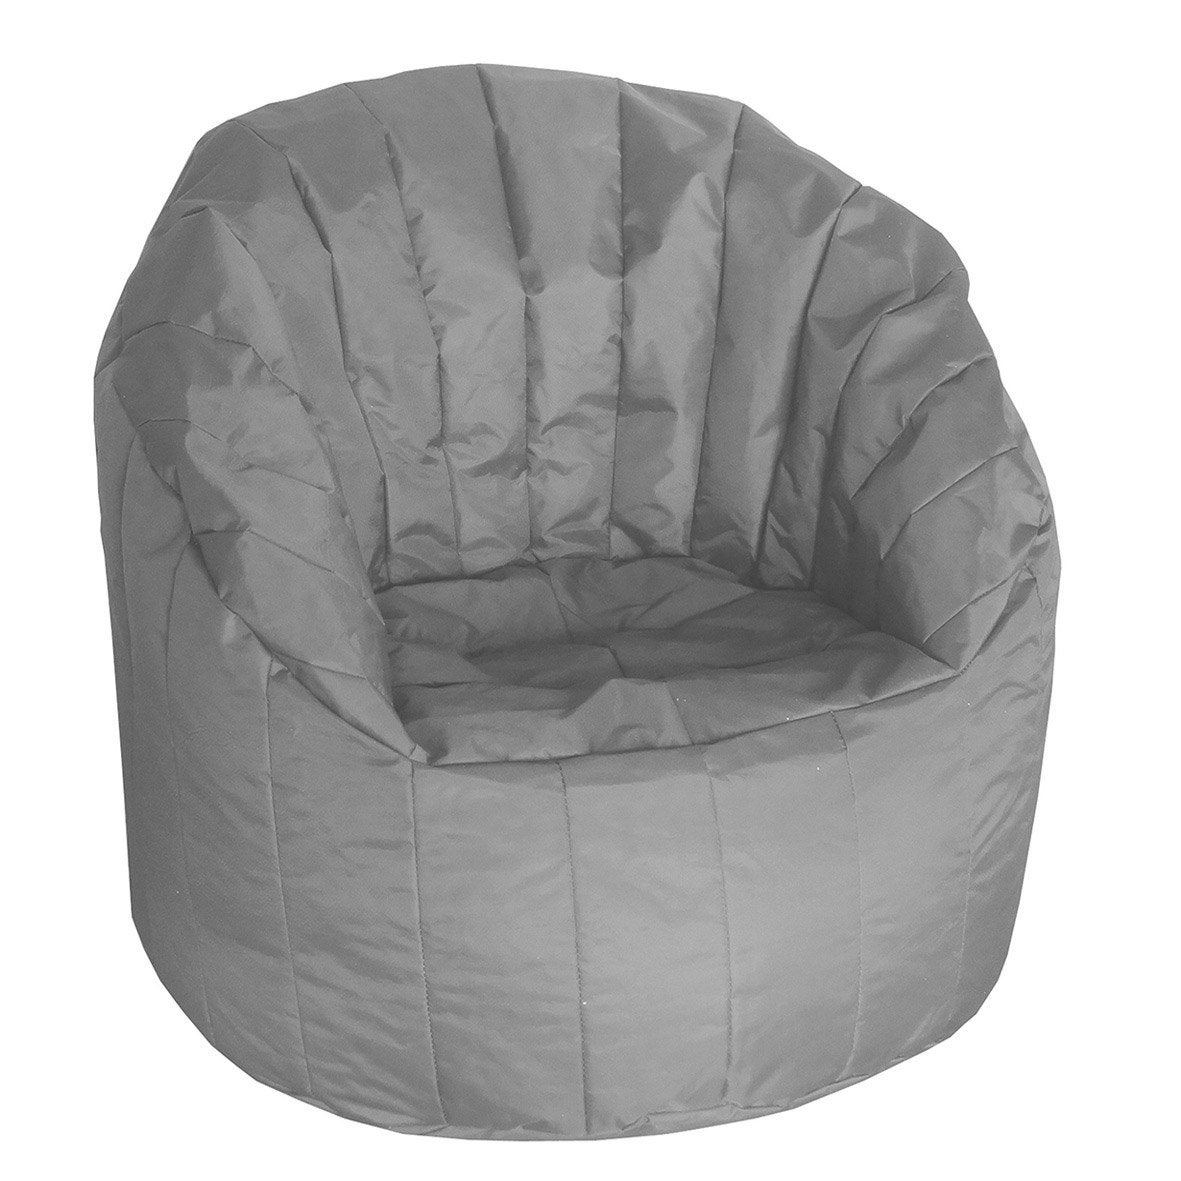 L HectorTaupe Imperméable 70 H X Merlin Pouf 80 CmLeroy thsdQr